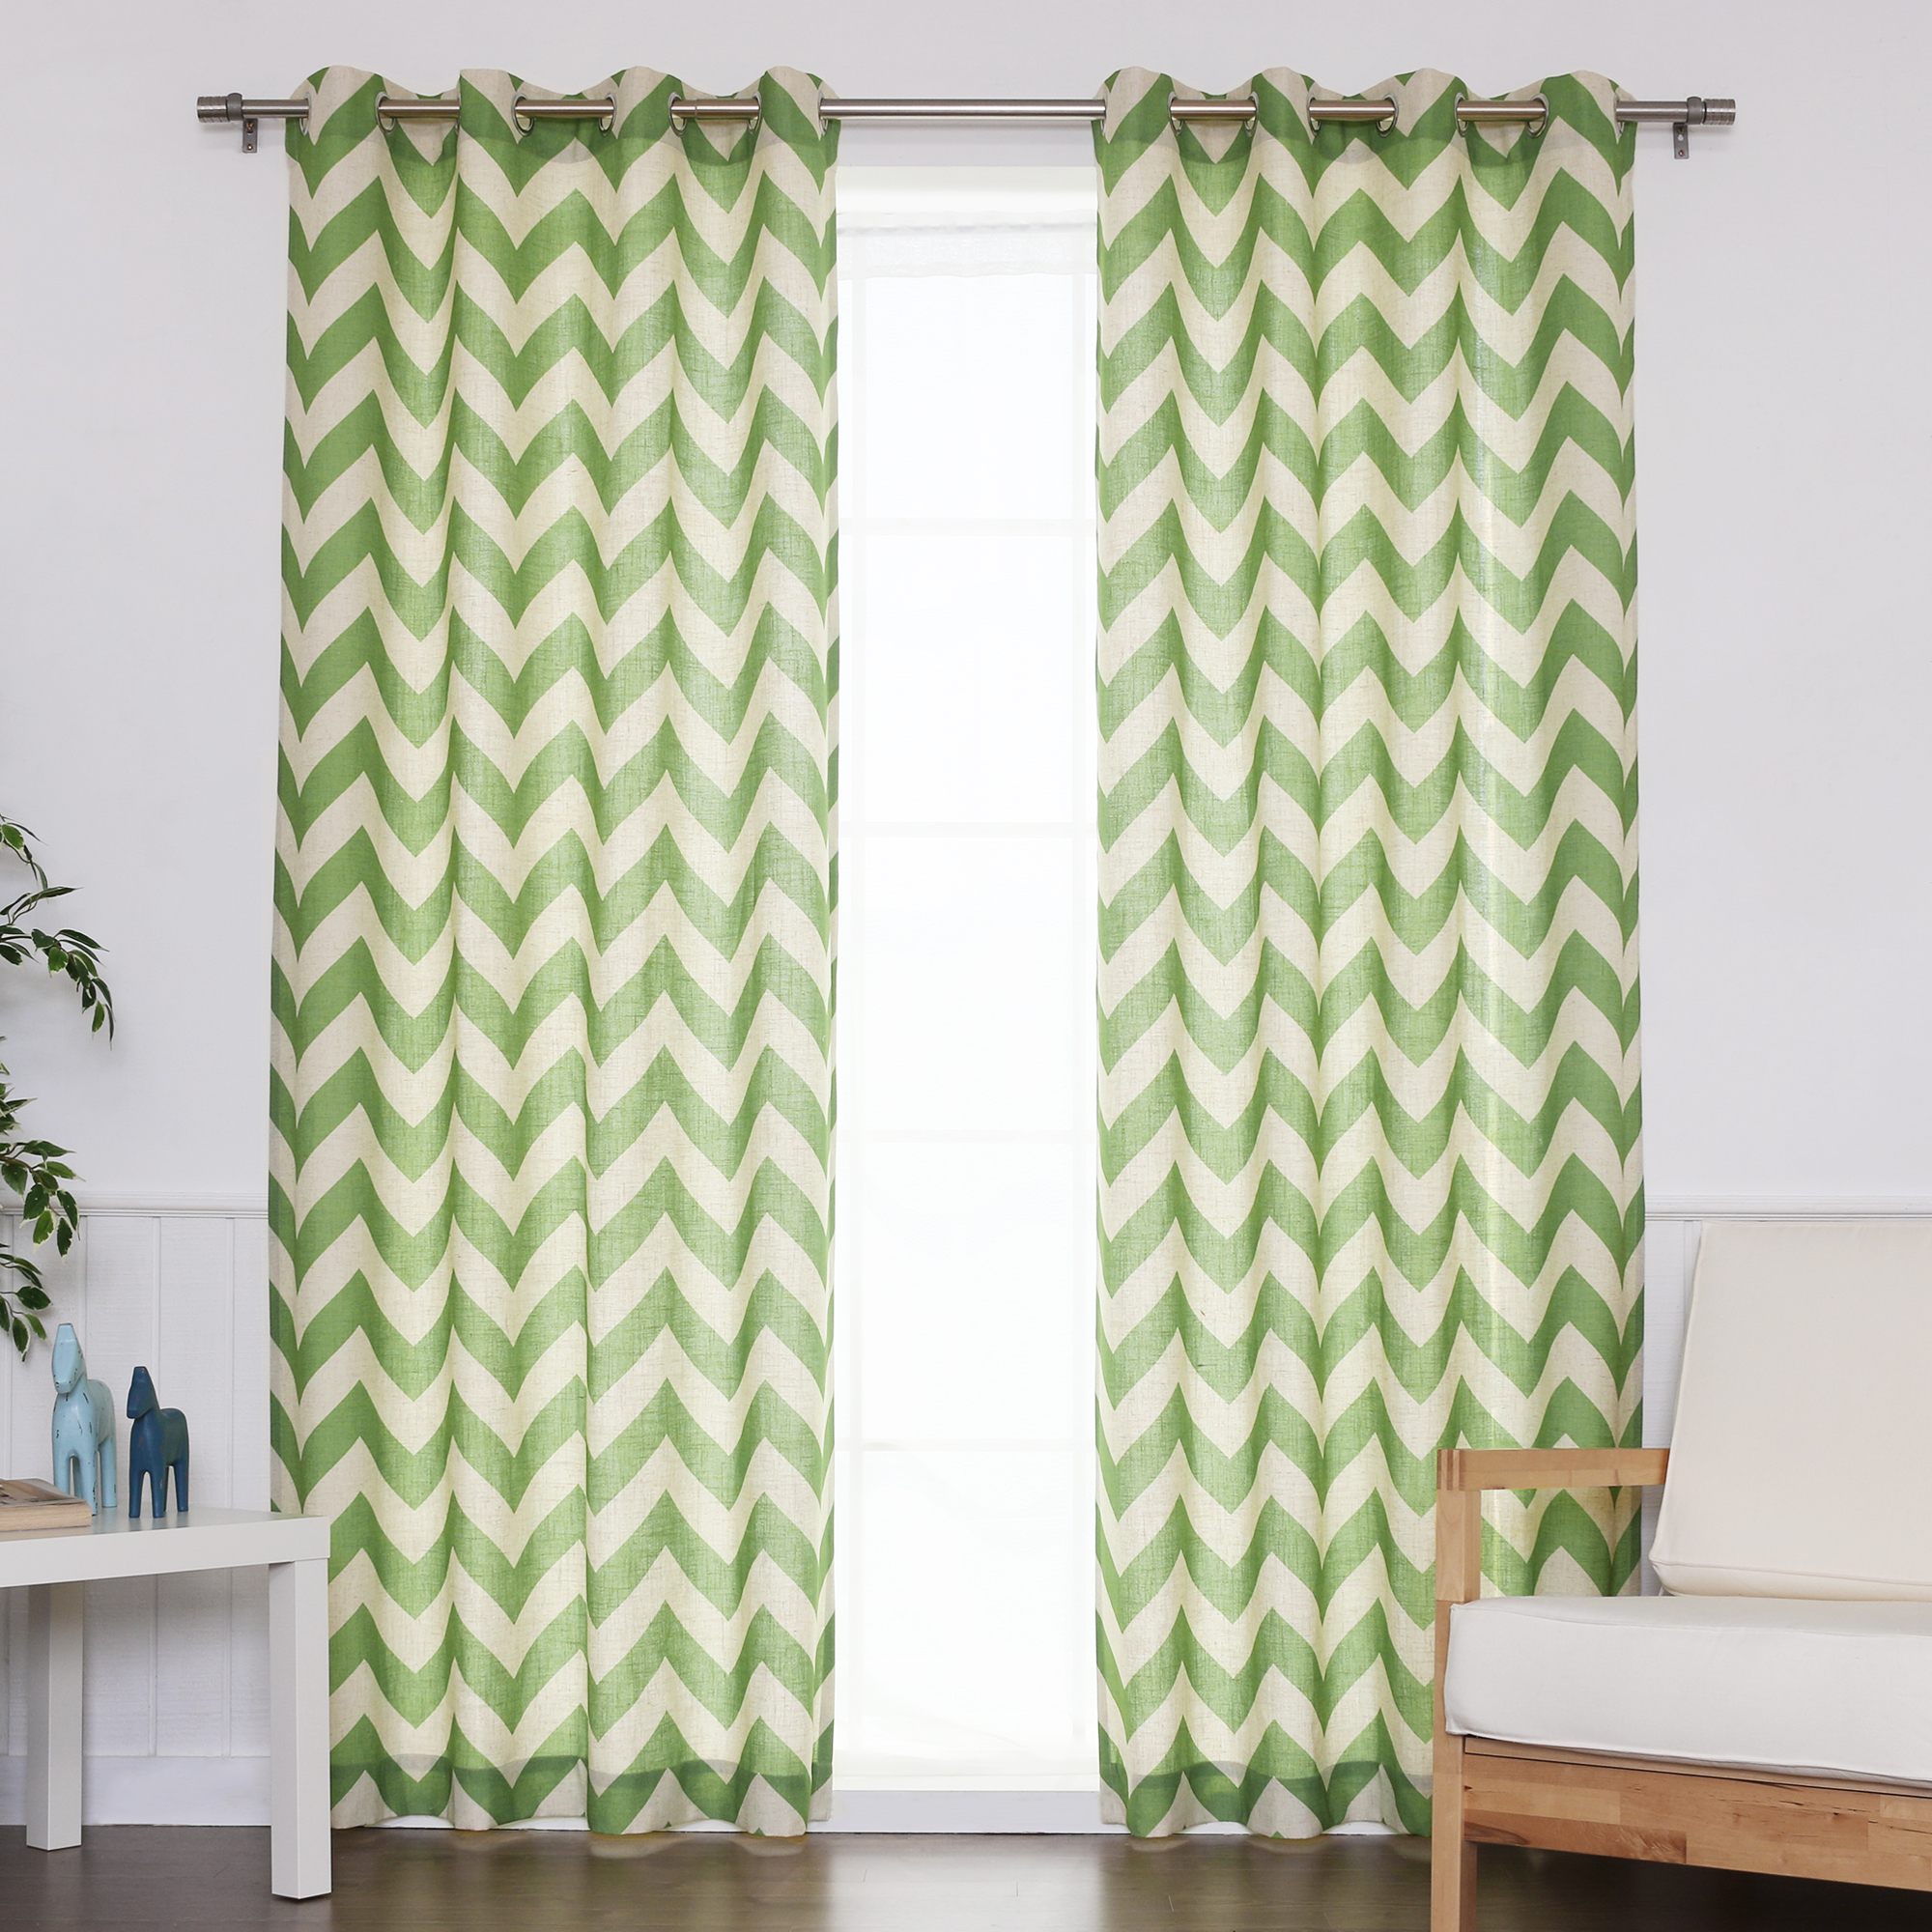 "Quality Home Flex Linen Blend Chevron Nickel Grommet Curtains - Green - 52"" x 96"" (Set of 2 Panels)"